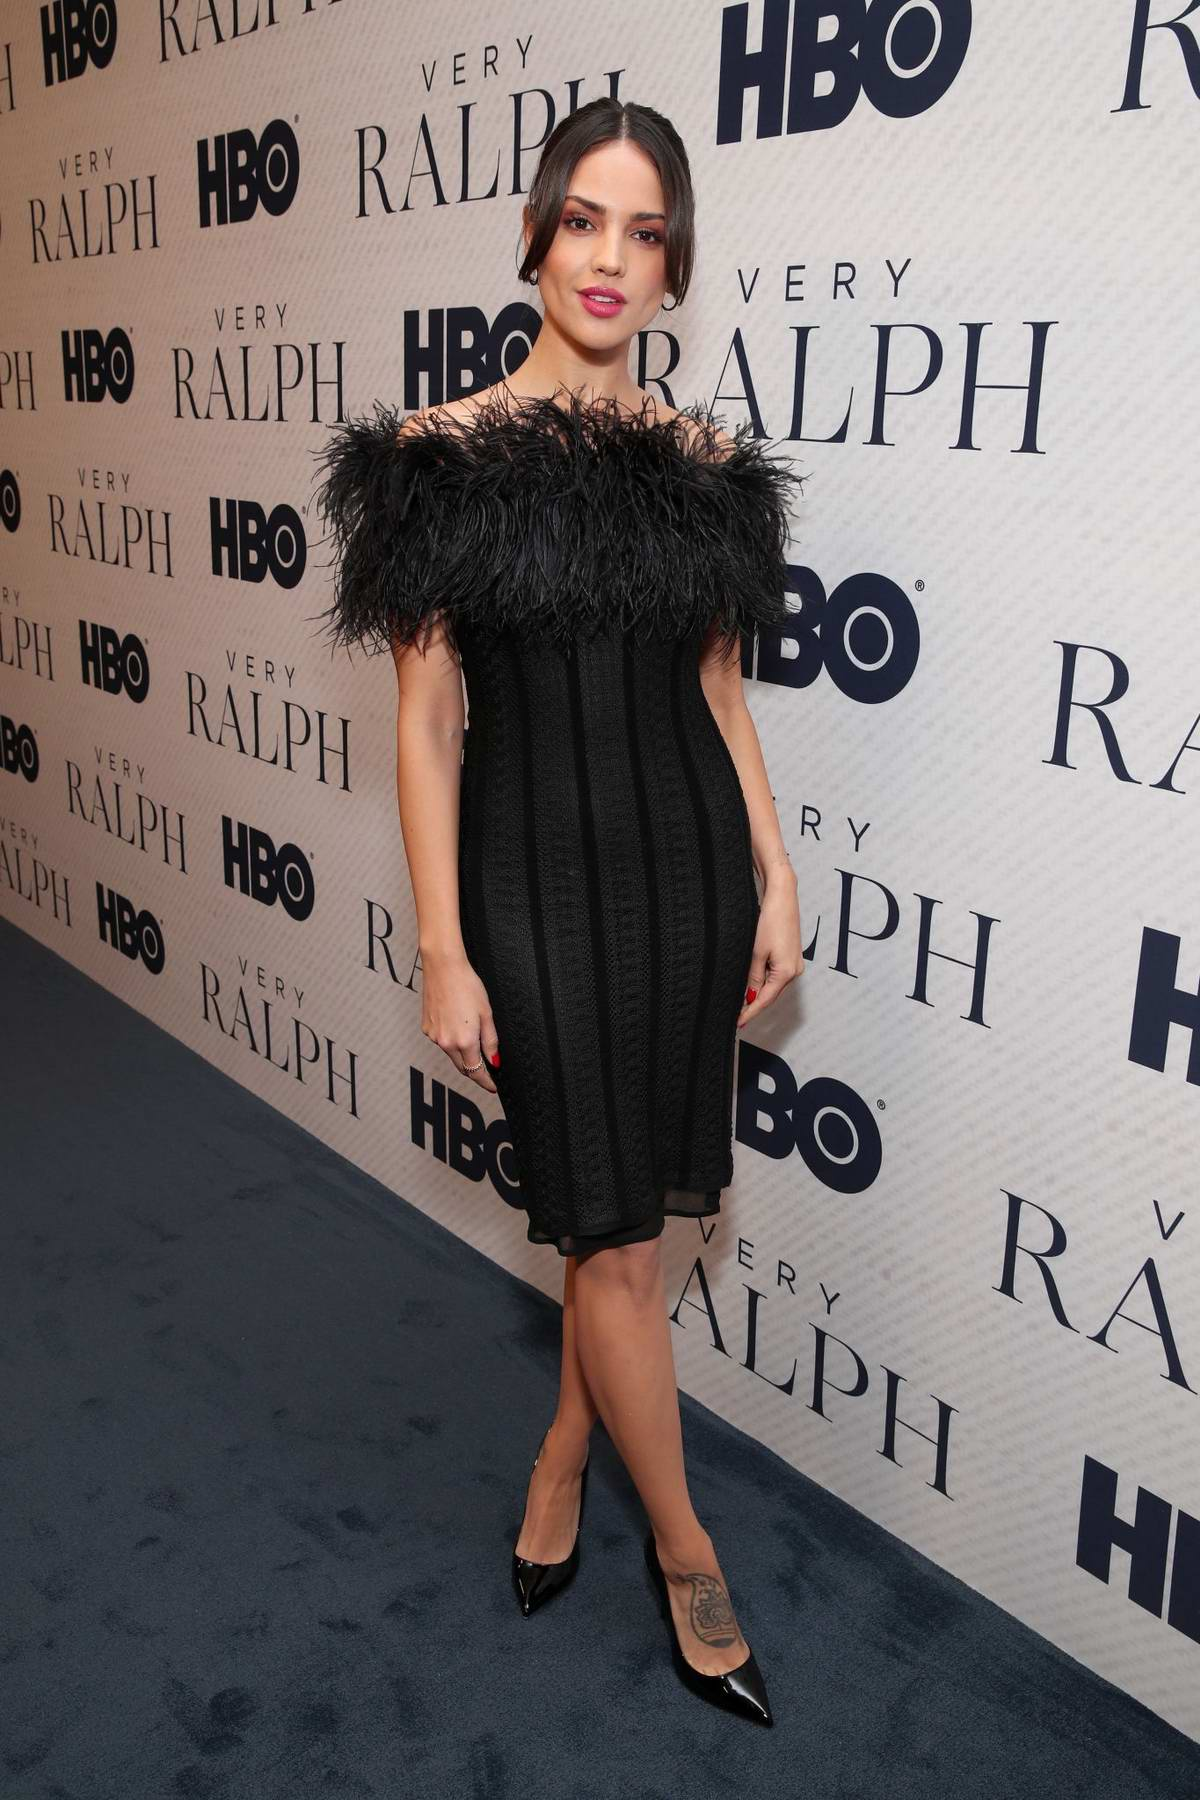 Eiza Gonzalez attends the Premiere of HBO Documentary film 'Very Ralph' at The Paley Center in Beverly Hills, Los Angeles